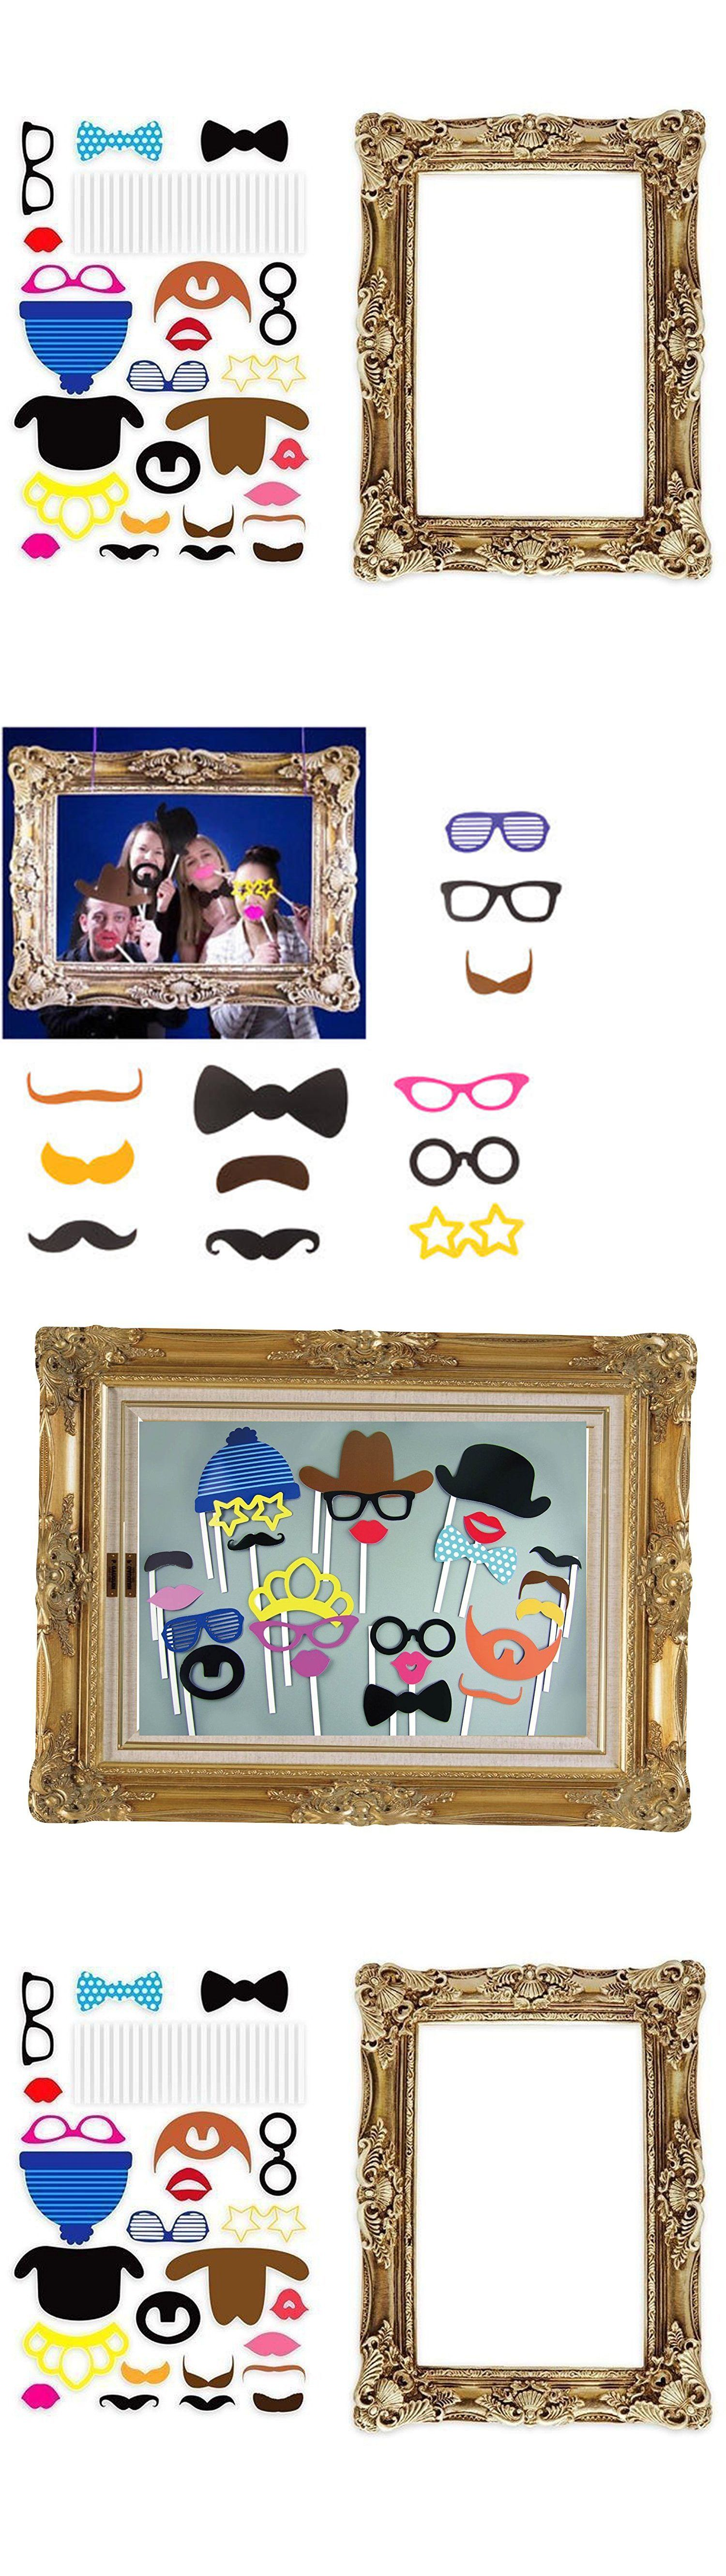 Disposable Cameras 177763: Lf0024-24 Party Props With Photo Booth ...